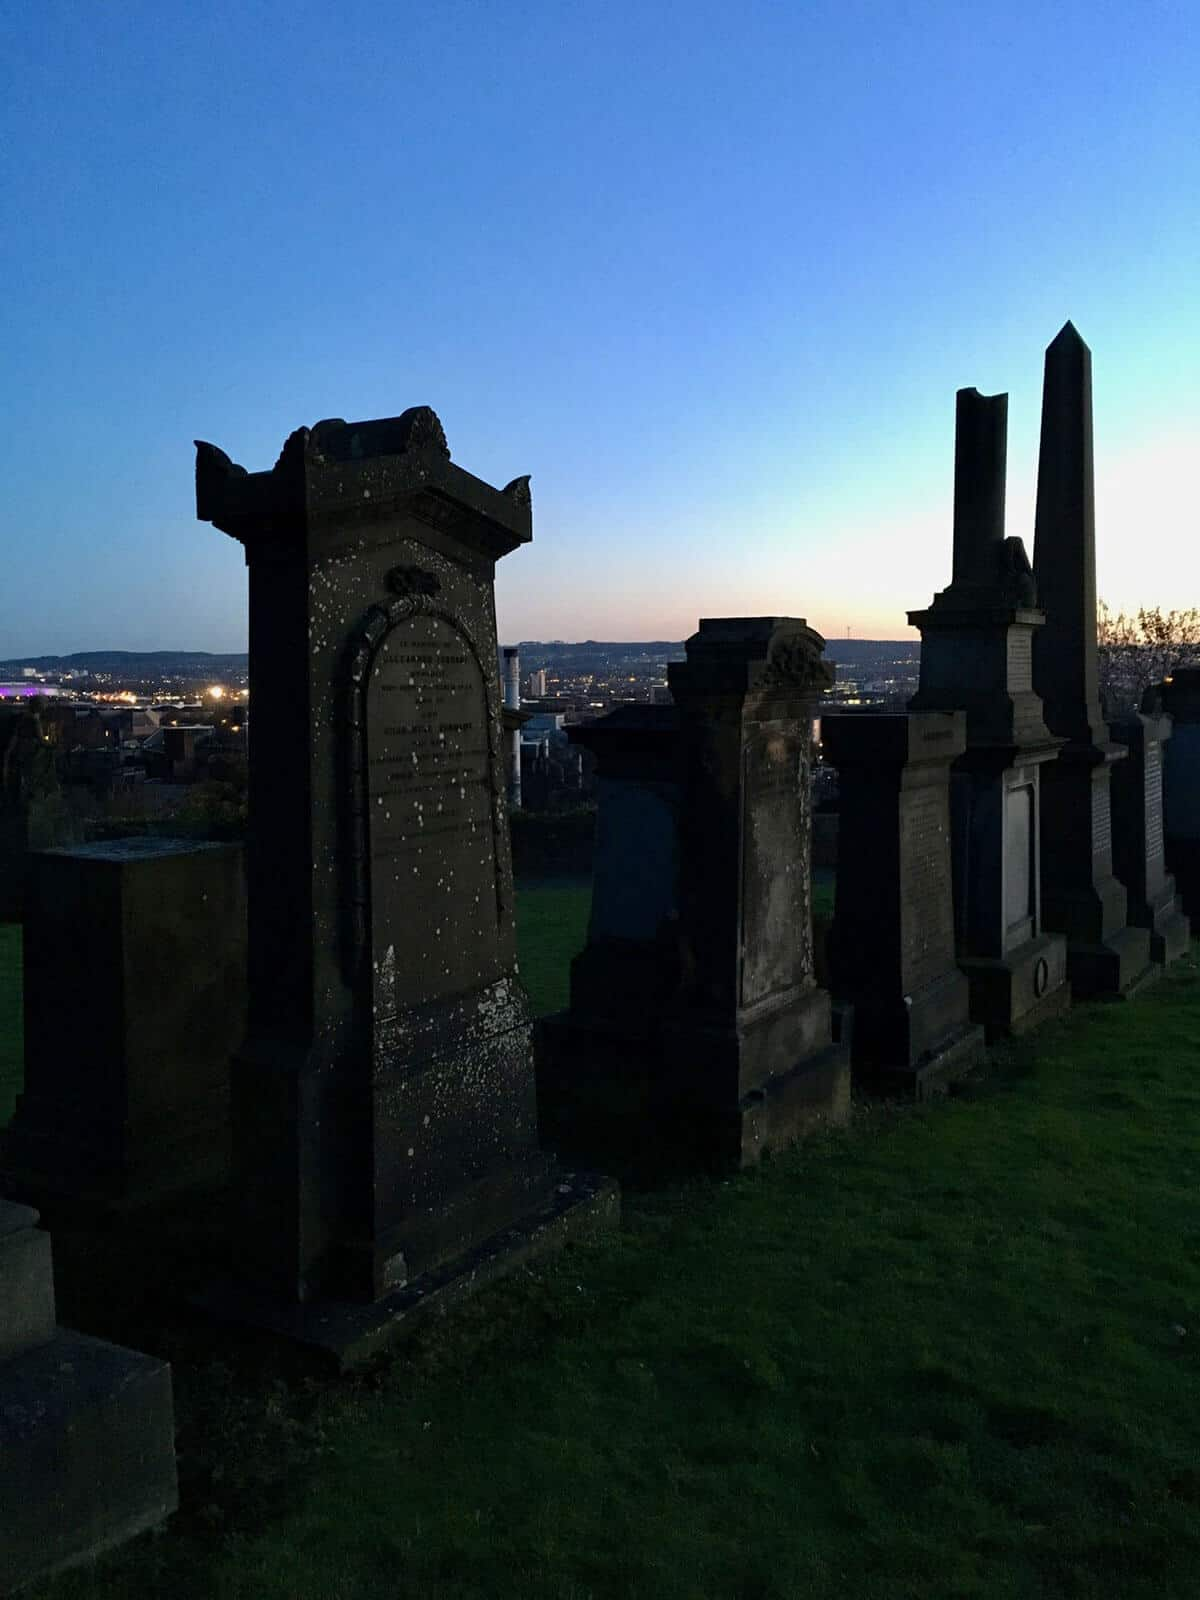 Six aged, mossy and weathered Victorian style grave stones and tombs with the Glasgow skyline in the back ground as the sun sets casting a dark shadow glow on the graves.